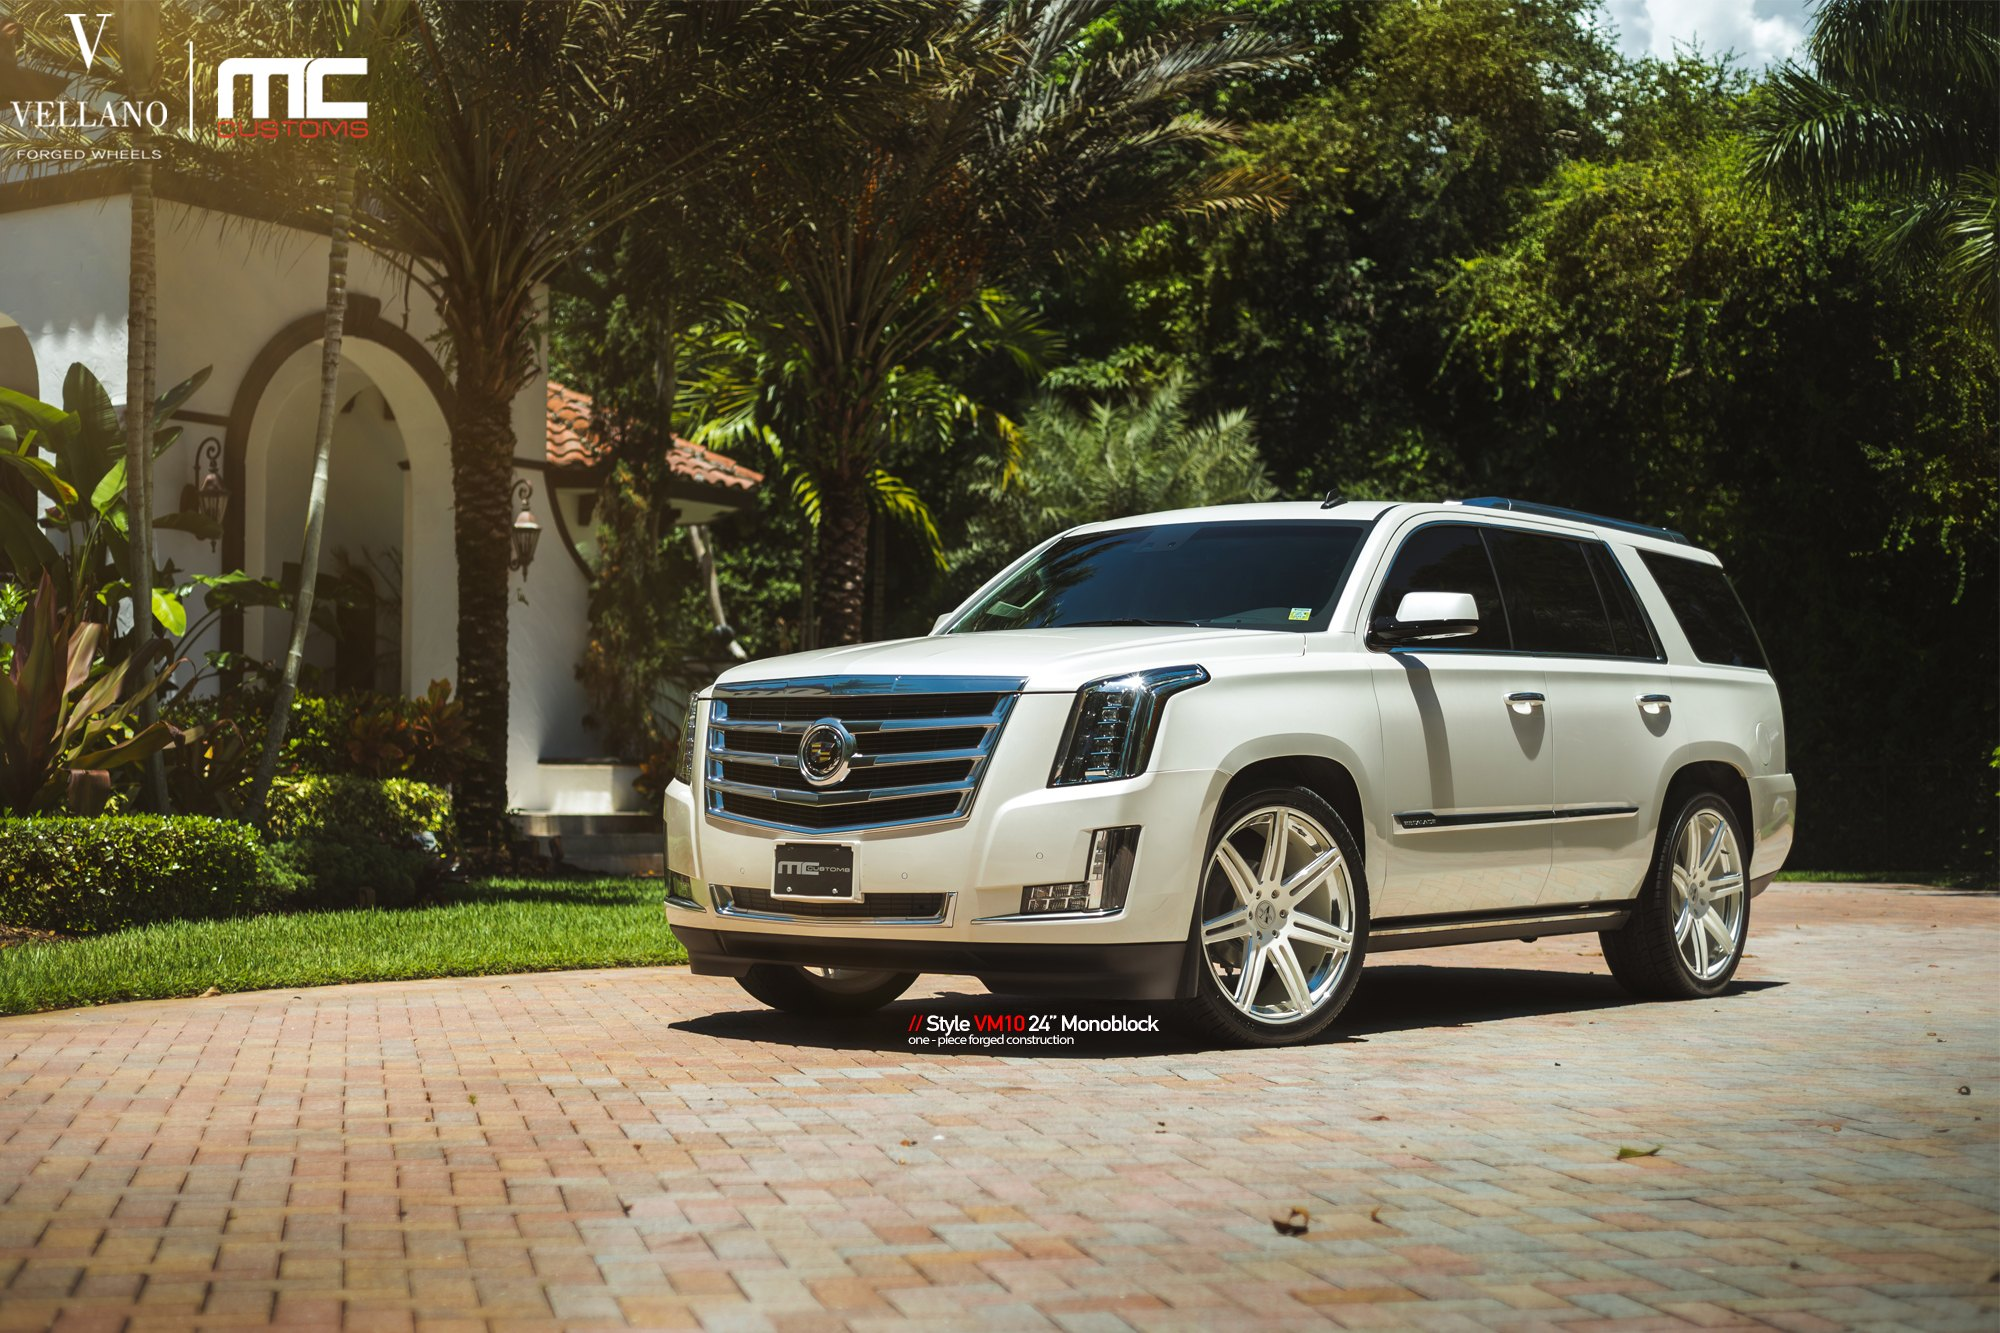 white cadillac escalade enhanced by chrome details and jaw. Black Bedroom Furniture Sets. Home Design Ideas